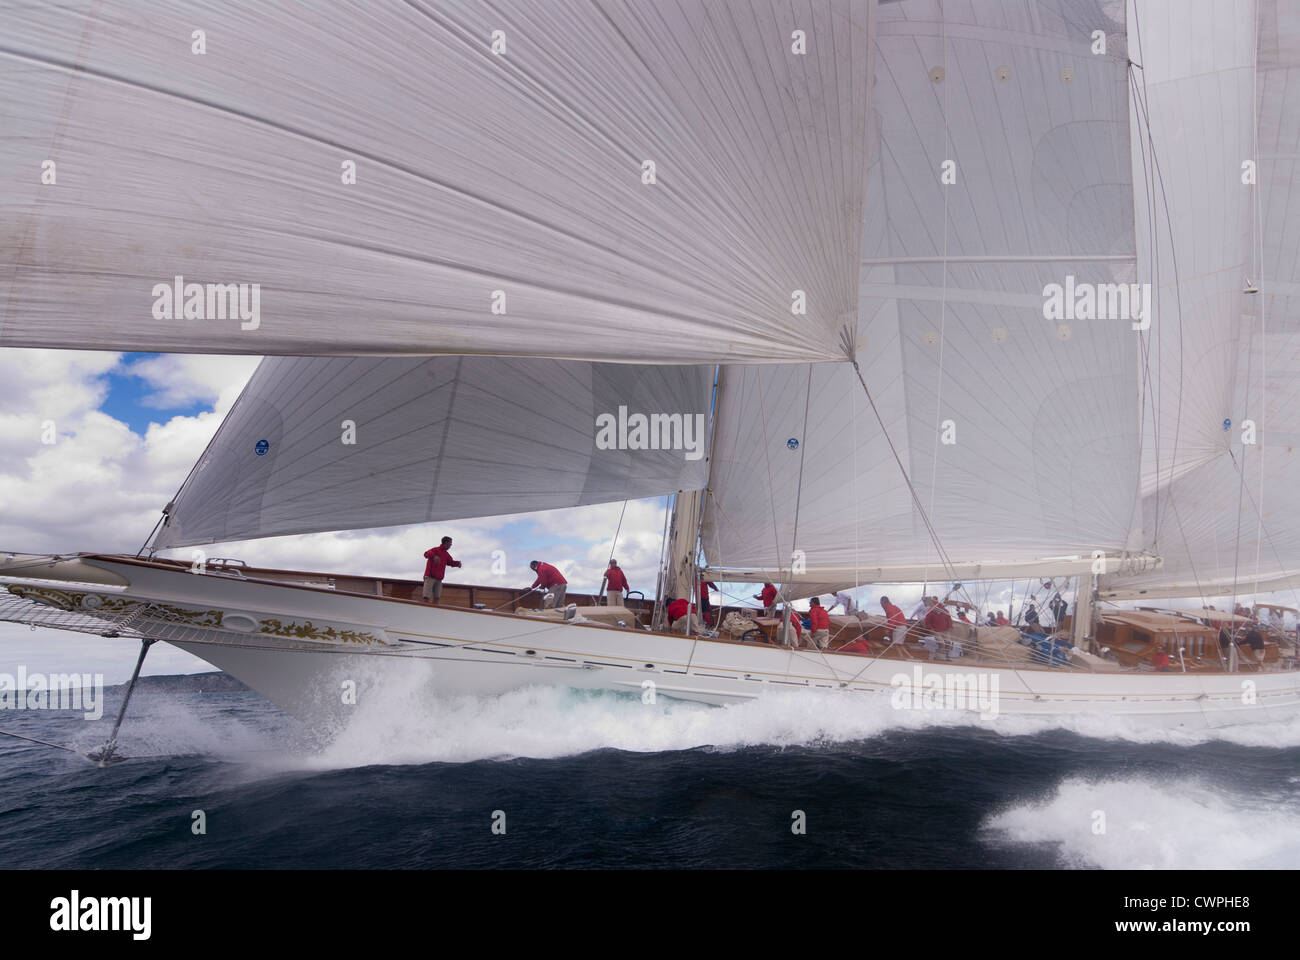 Classic yacht 'Adela' Sailing in the English Channel off Falmouth Stock Photo